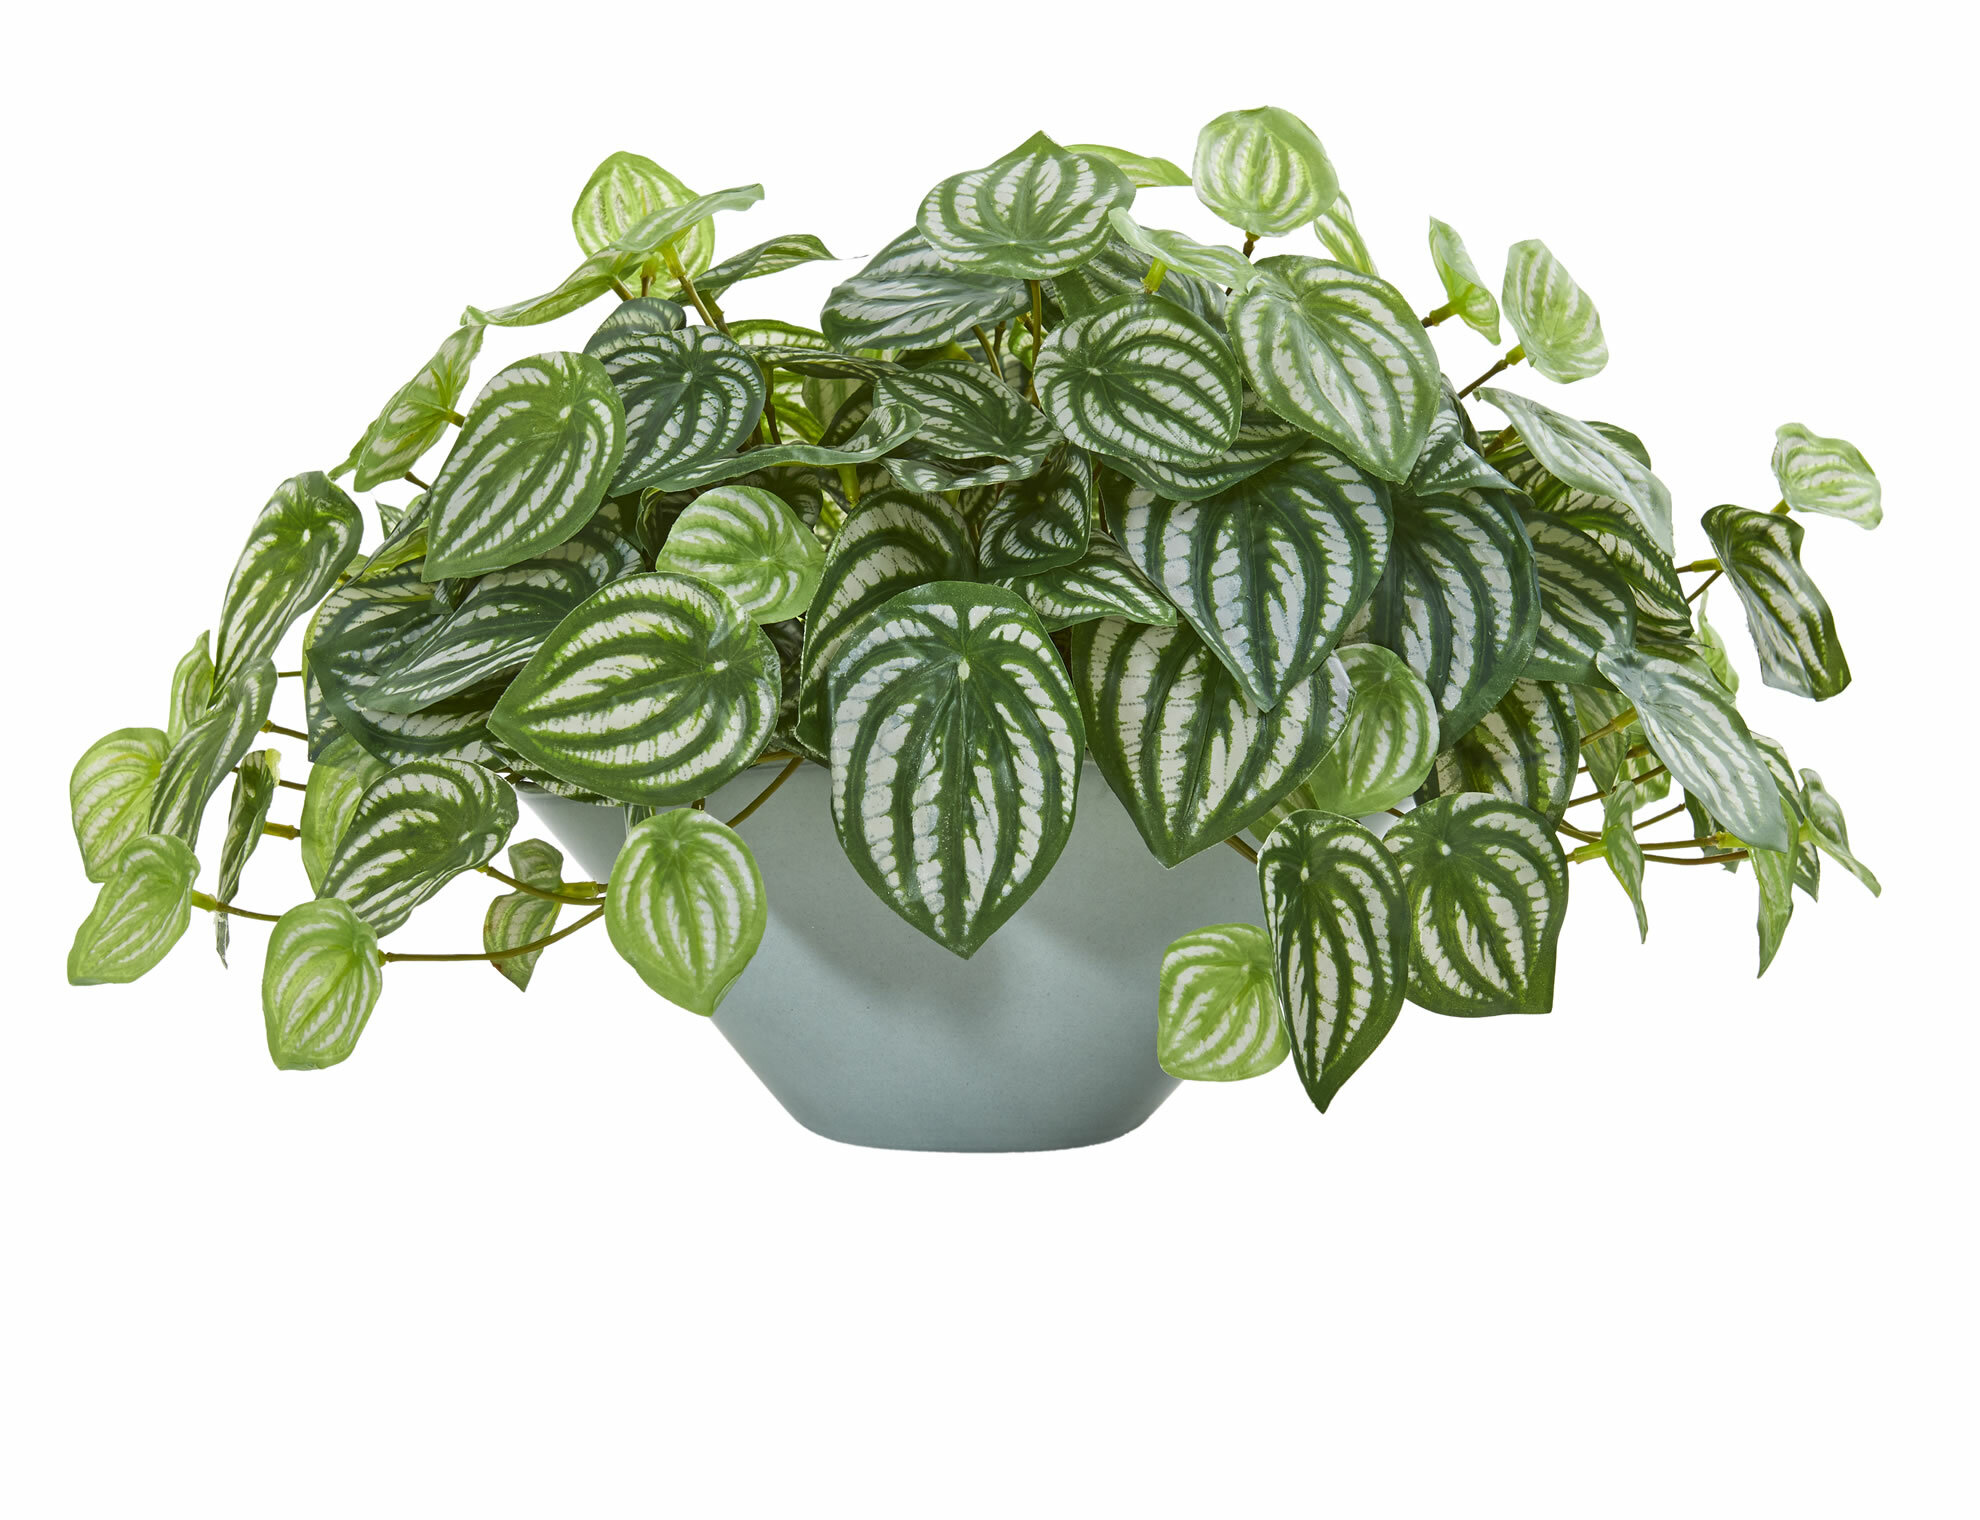 Charlton Home Artificial Watermelon Peperomia Foliage Plant In Decorative Vase Wayfair